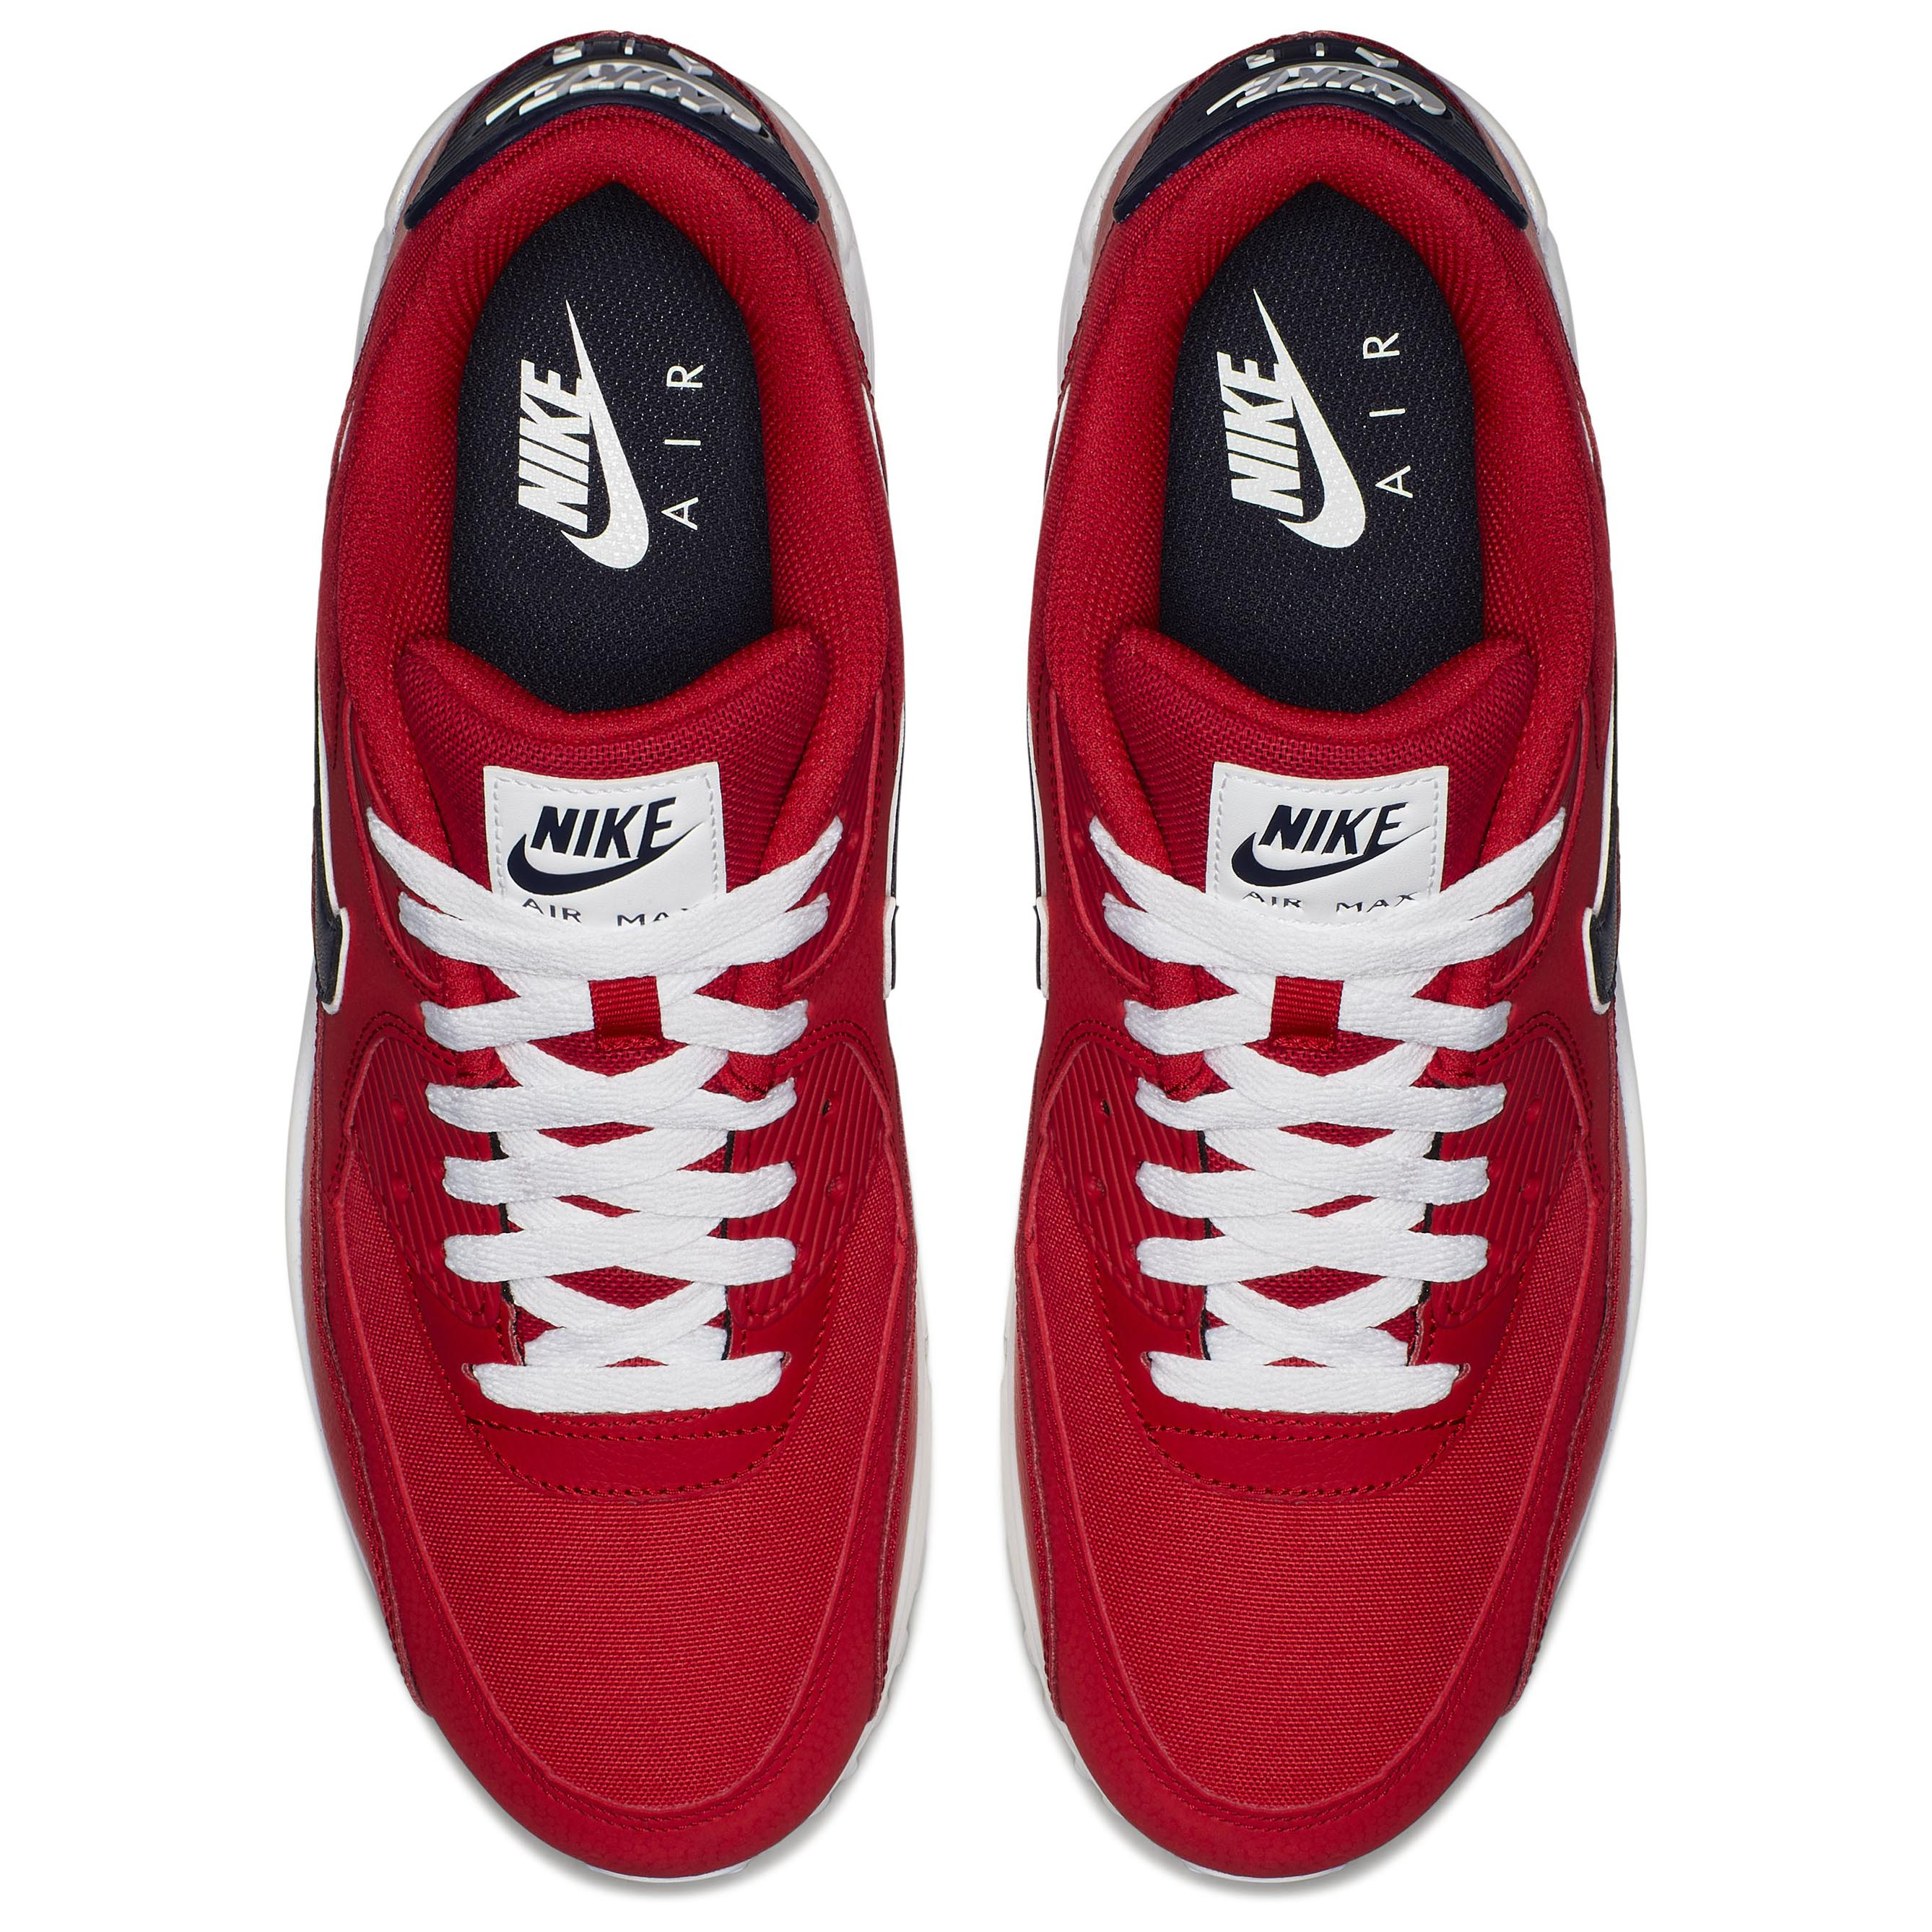 3e143964 Мужские кроссовки Nike Air Max 90 Essential University Red/Backened  Blue-White - фото